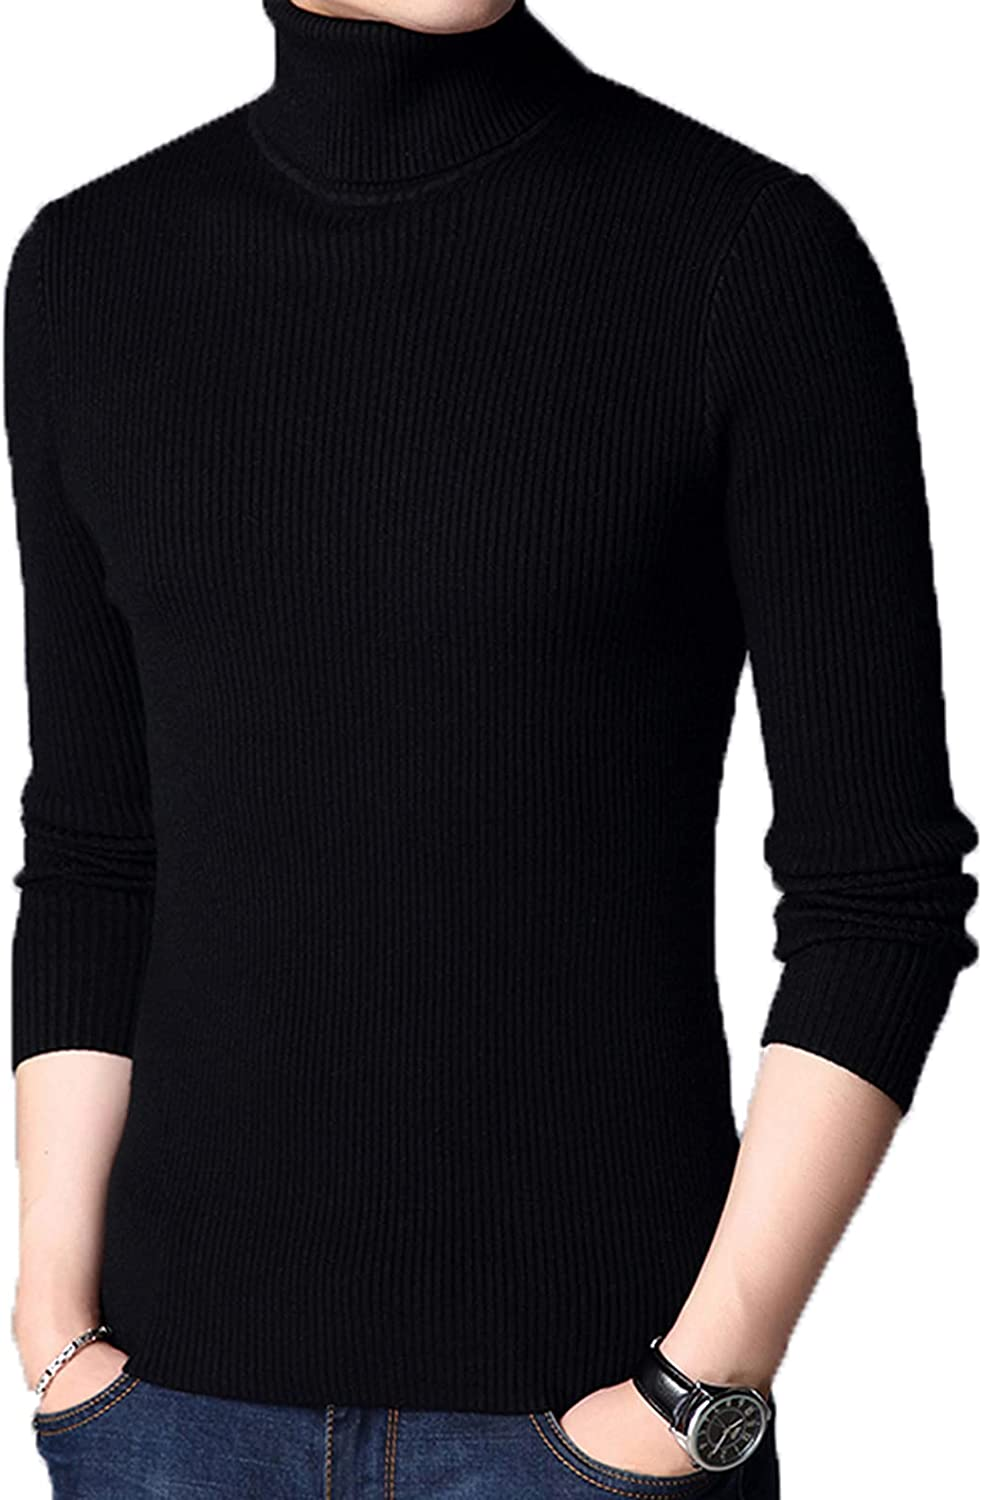 Men's Turtleneck Sweaters Slim Fit Knitted Pullover Solid Color Soft Long Sleeve Jumper